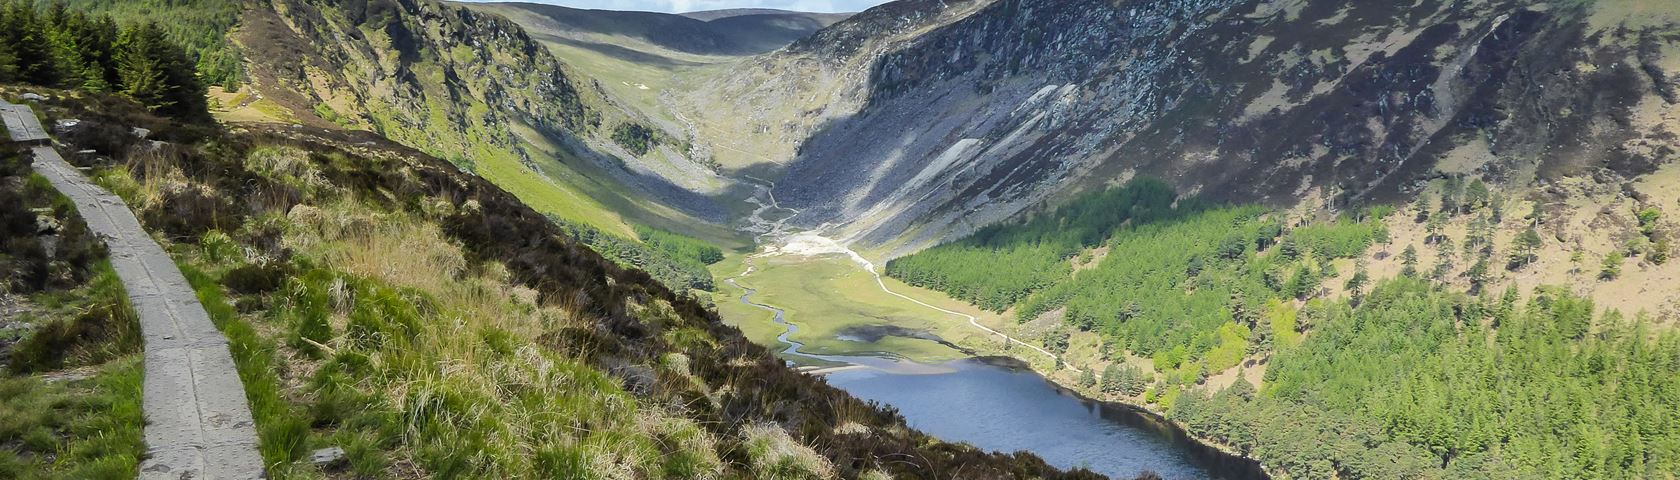 Glendalough Scenic View Images WallpaperFusion by Binary 1680x480